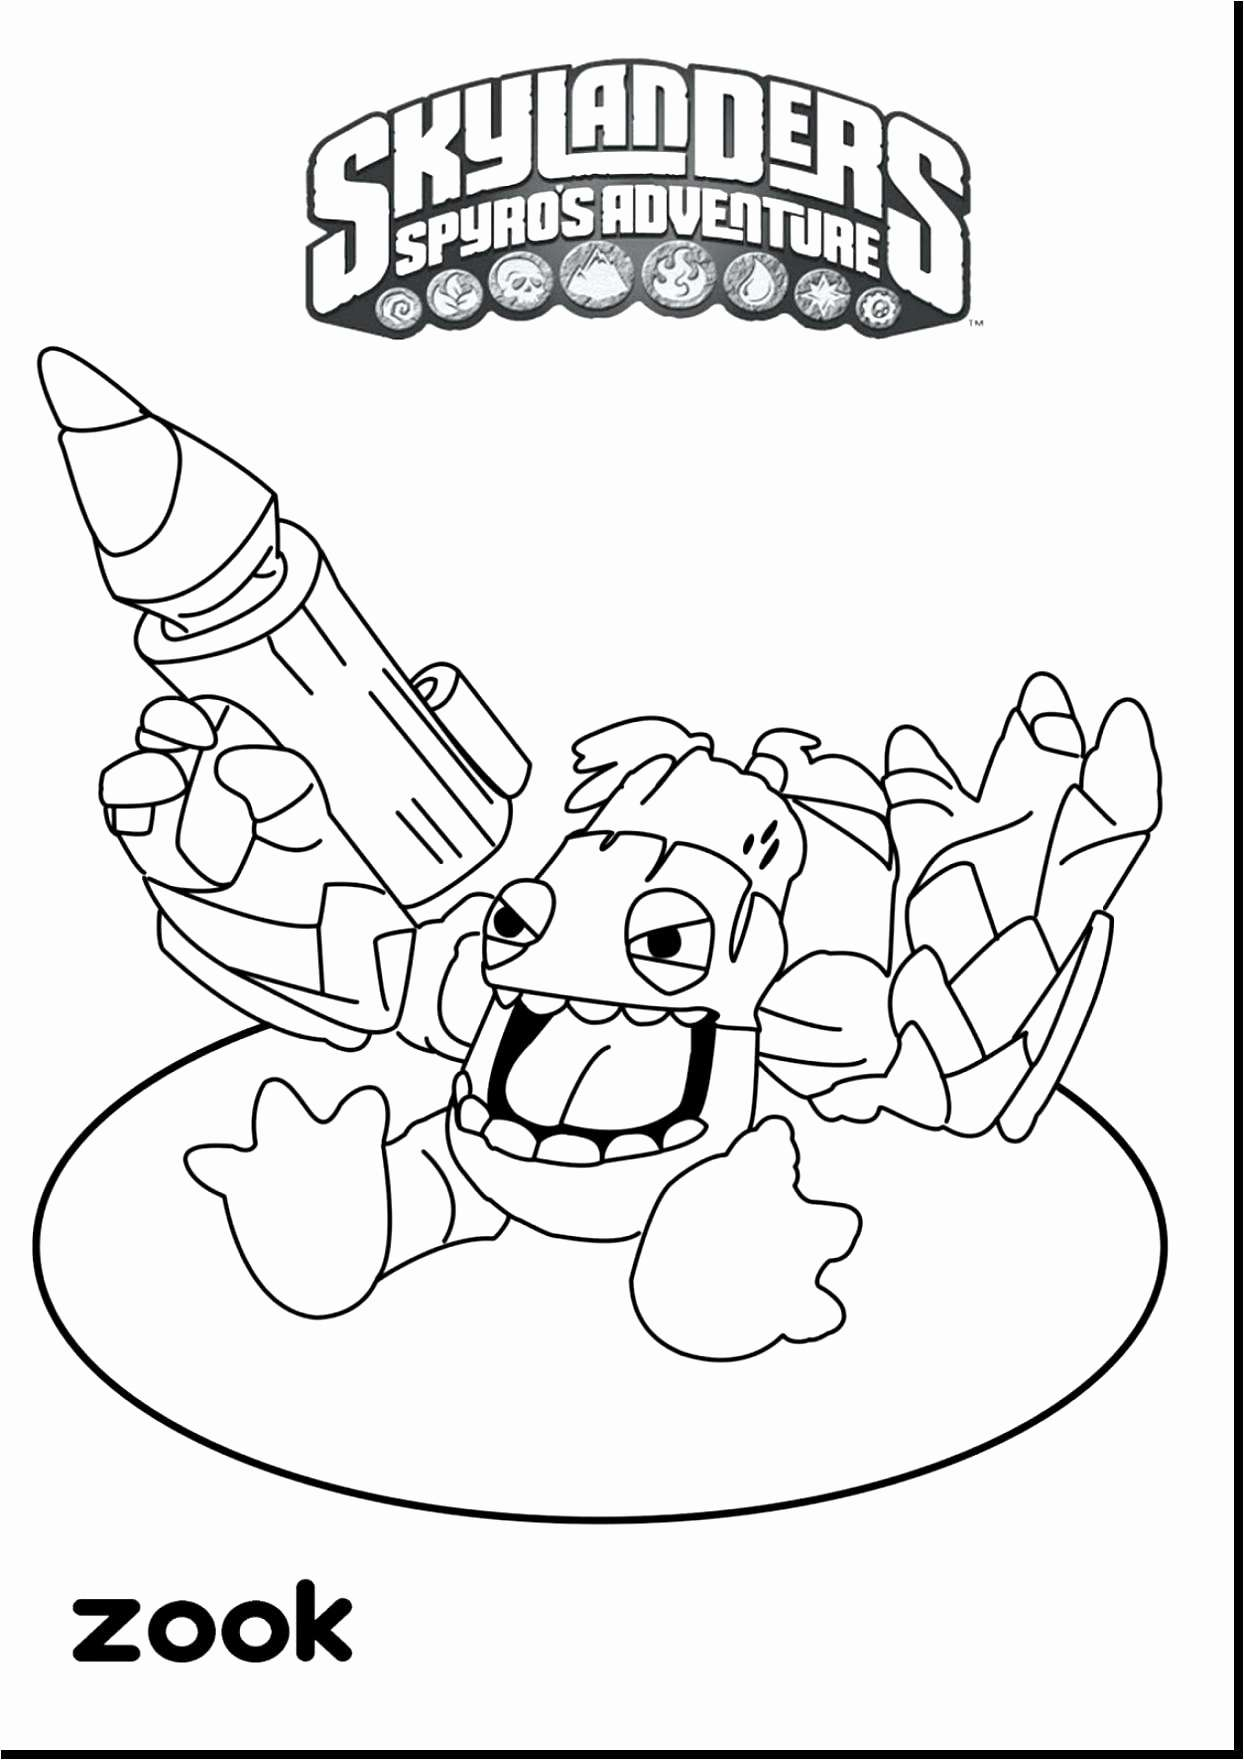 printable church coloring pages Collection-Free Printable Church Coloring Pages Free Printable Christmas Coloring Page 9-a